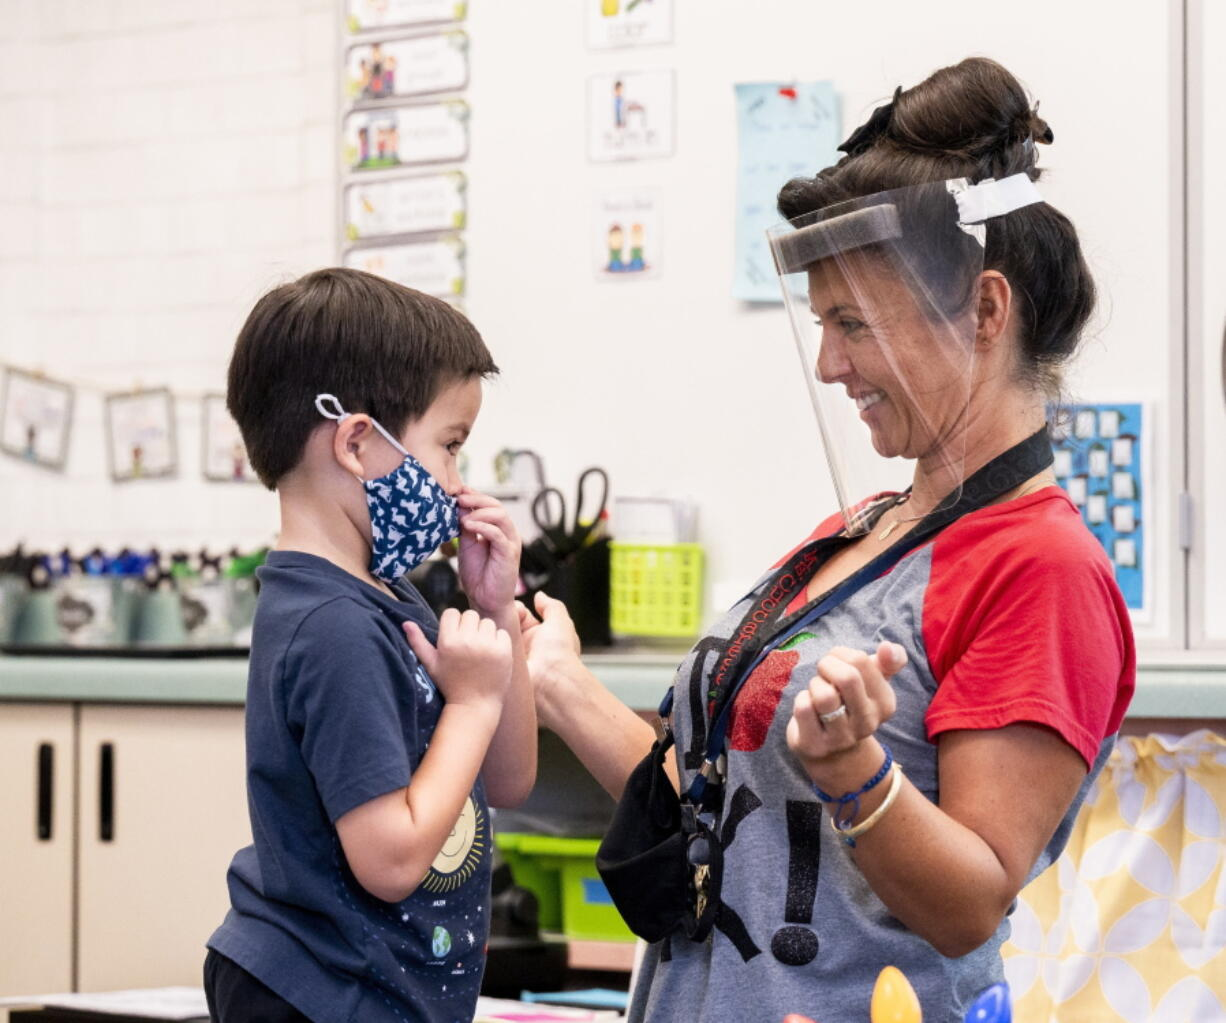 A student gets help with his mask from transitional kindergarten teacher Annette Cuccarese on Aug. 12, the first day of classes at Tustin Ranch Elementary School in Tustin, Calif. Now that California schools have welcomed students back to in-person learning, they face a new challenge: A shortage of teachers and all other staff.